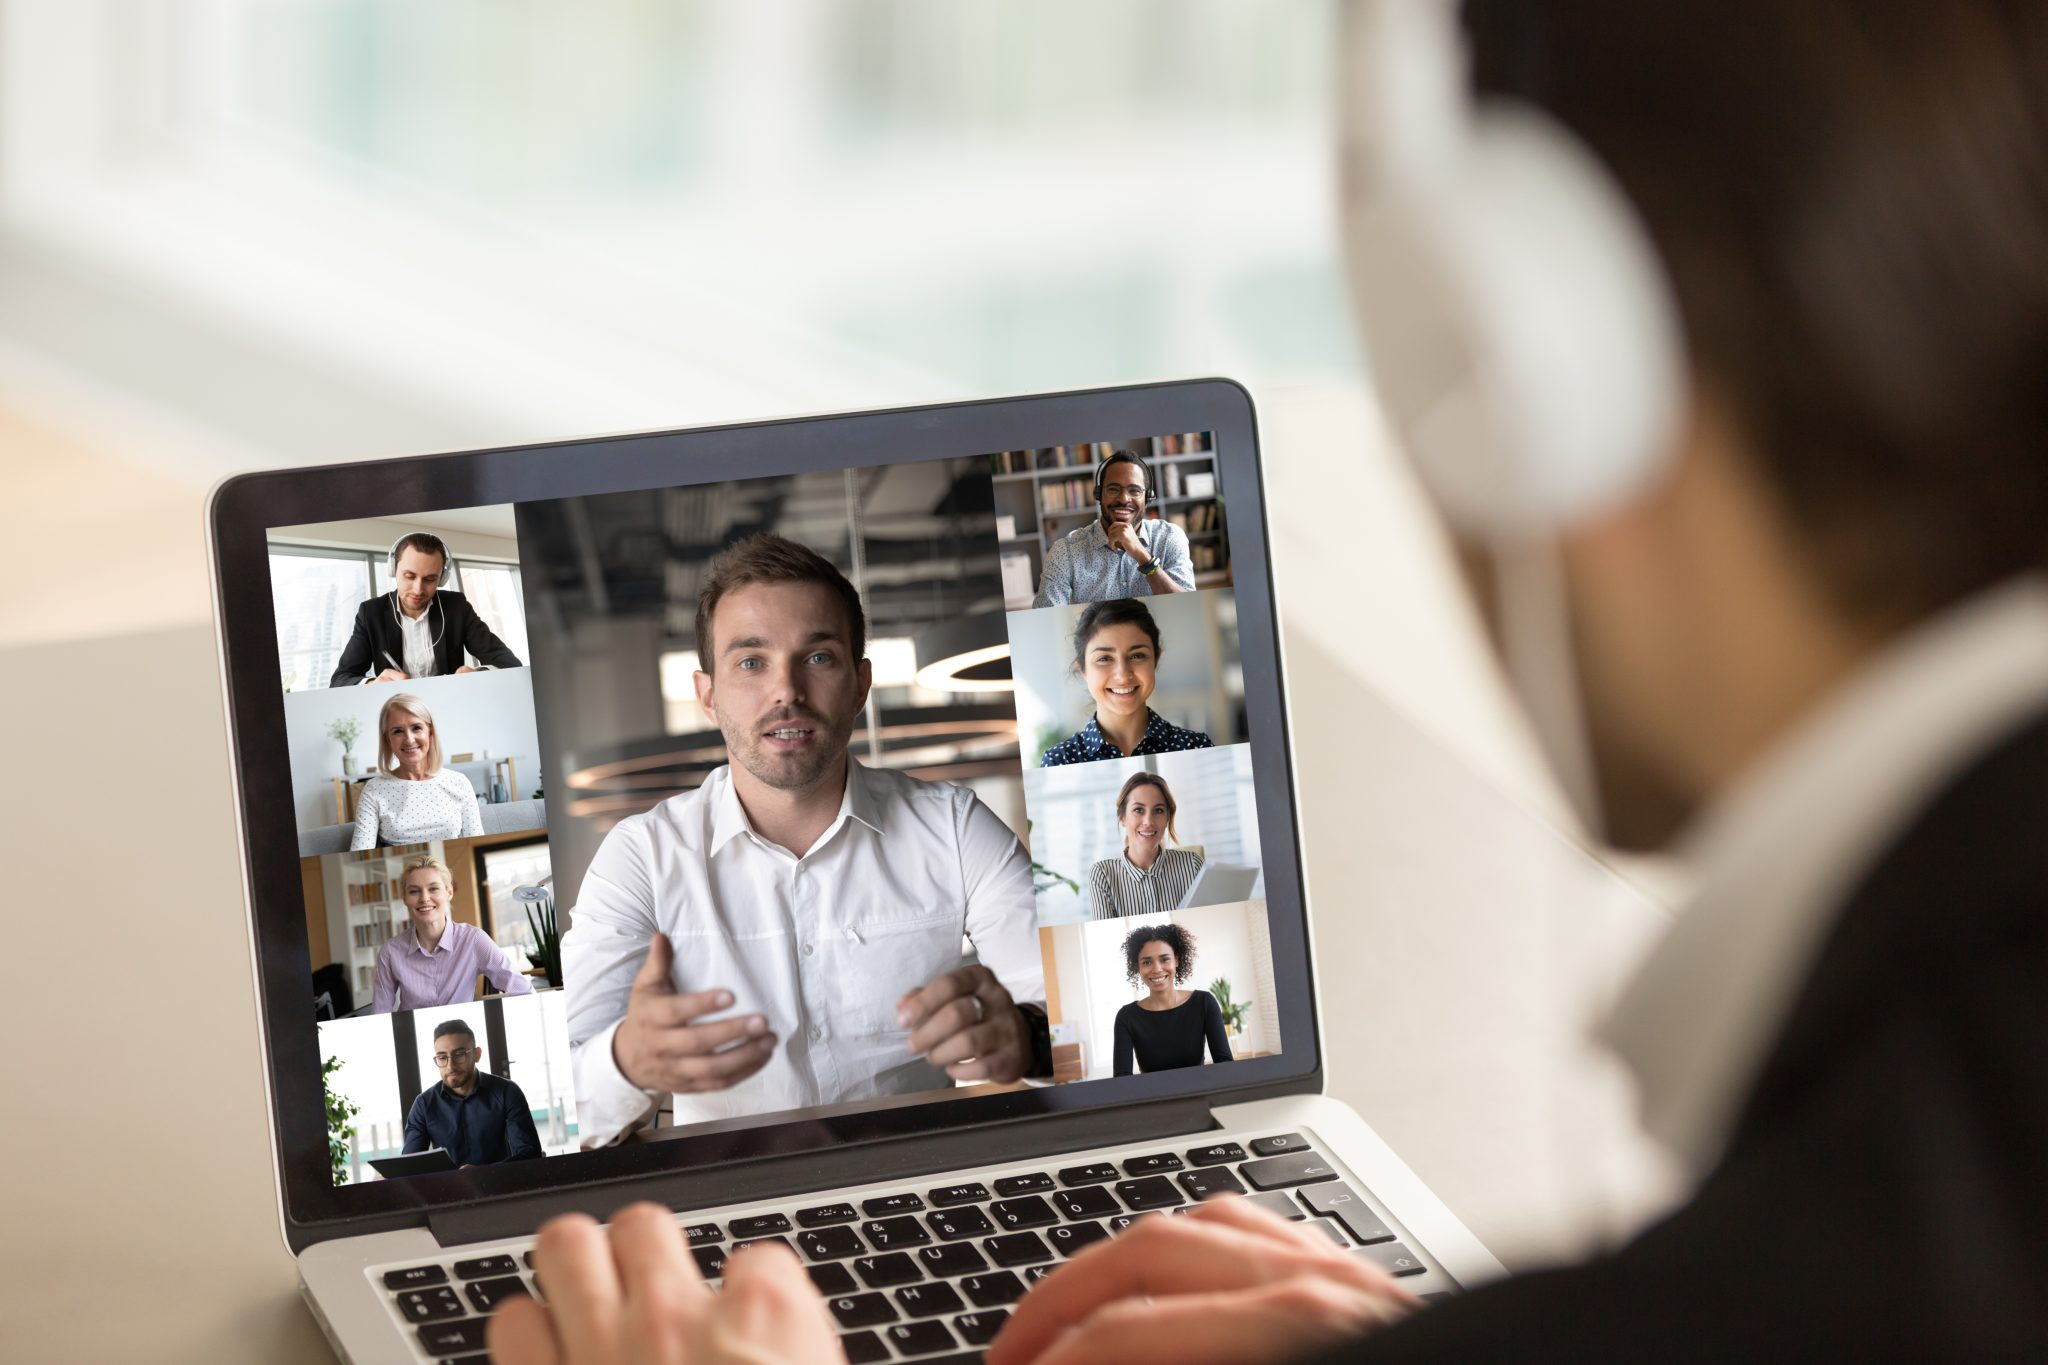 A group of people on a virtual interview